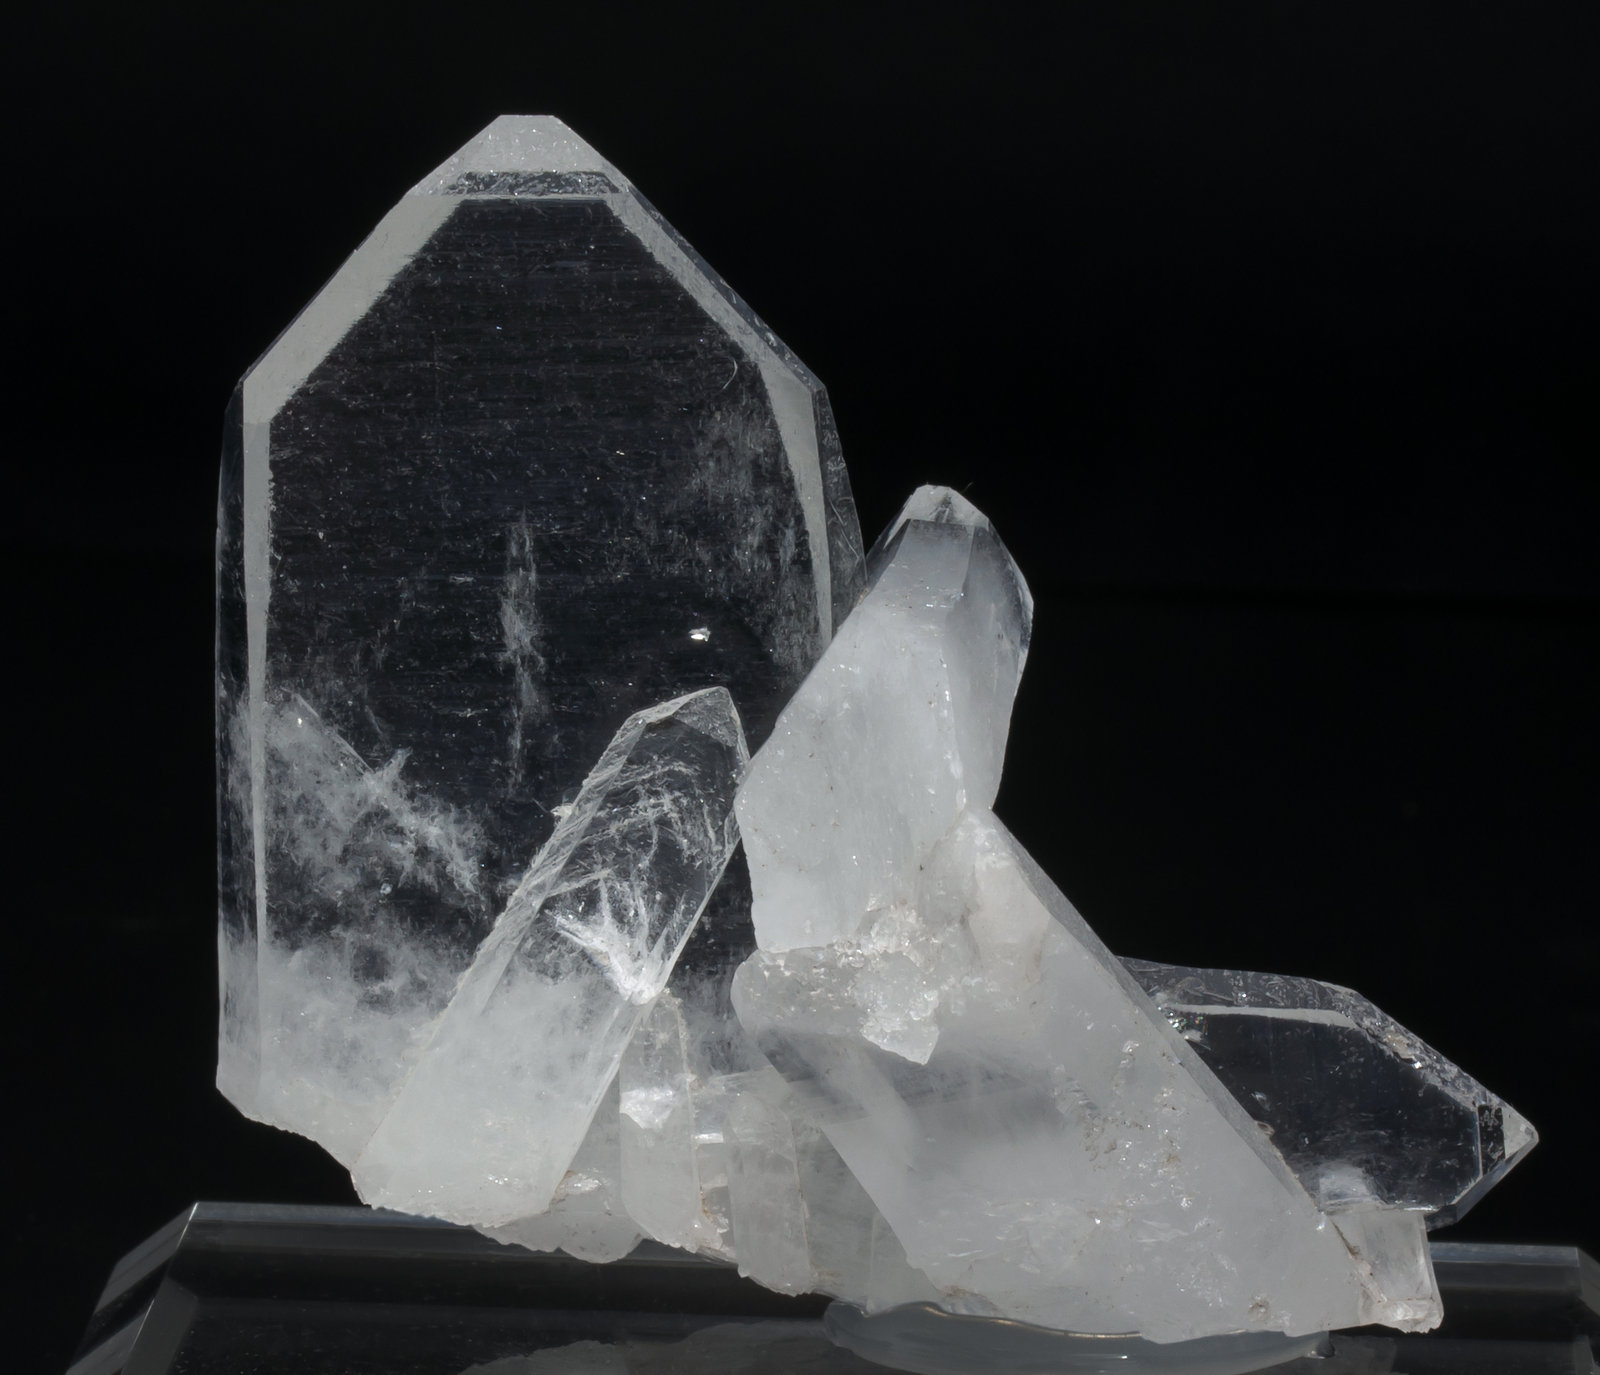 specimens/s_imagesAB2/Quartz-TH29AB2r.jpg